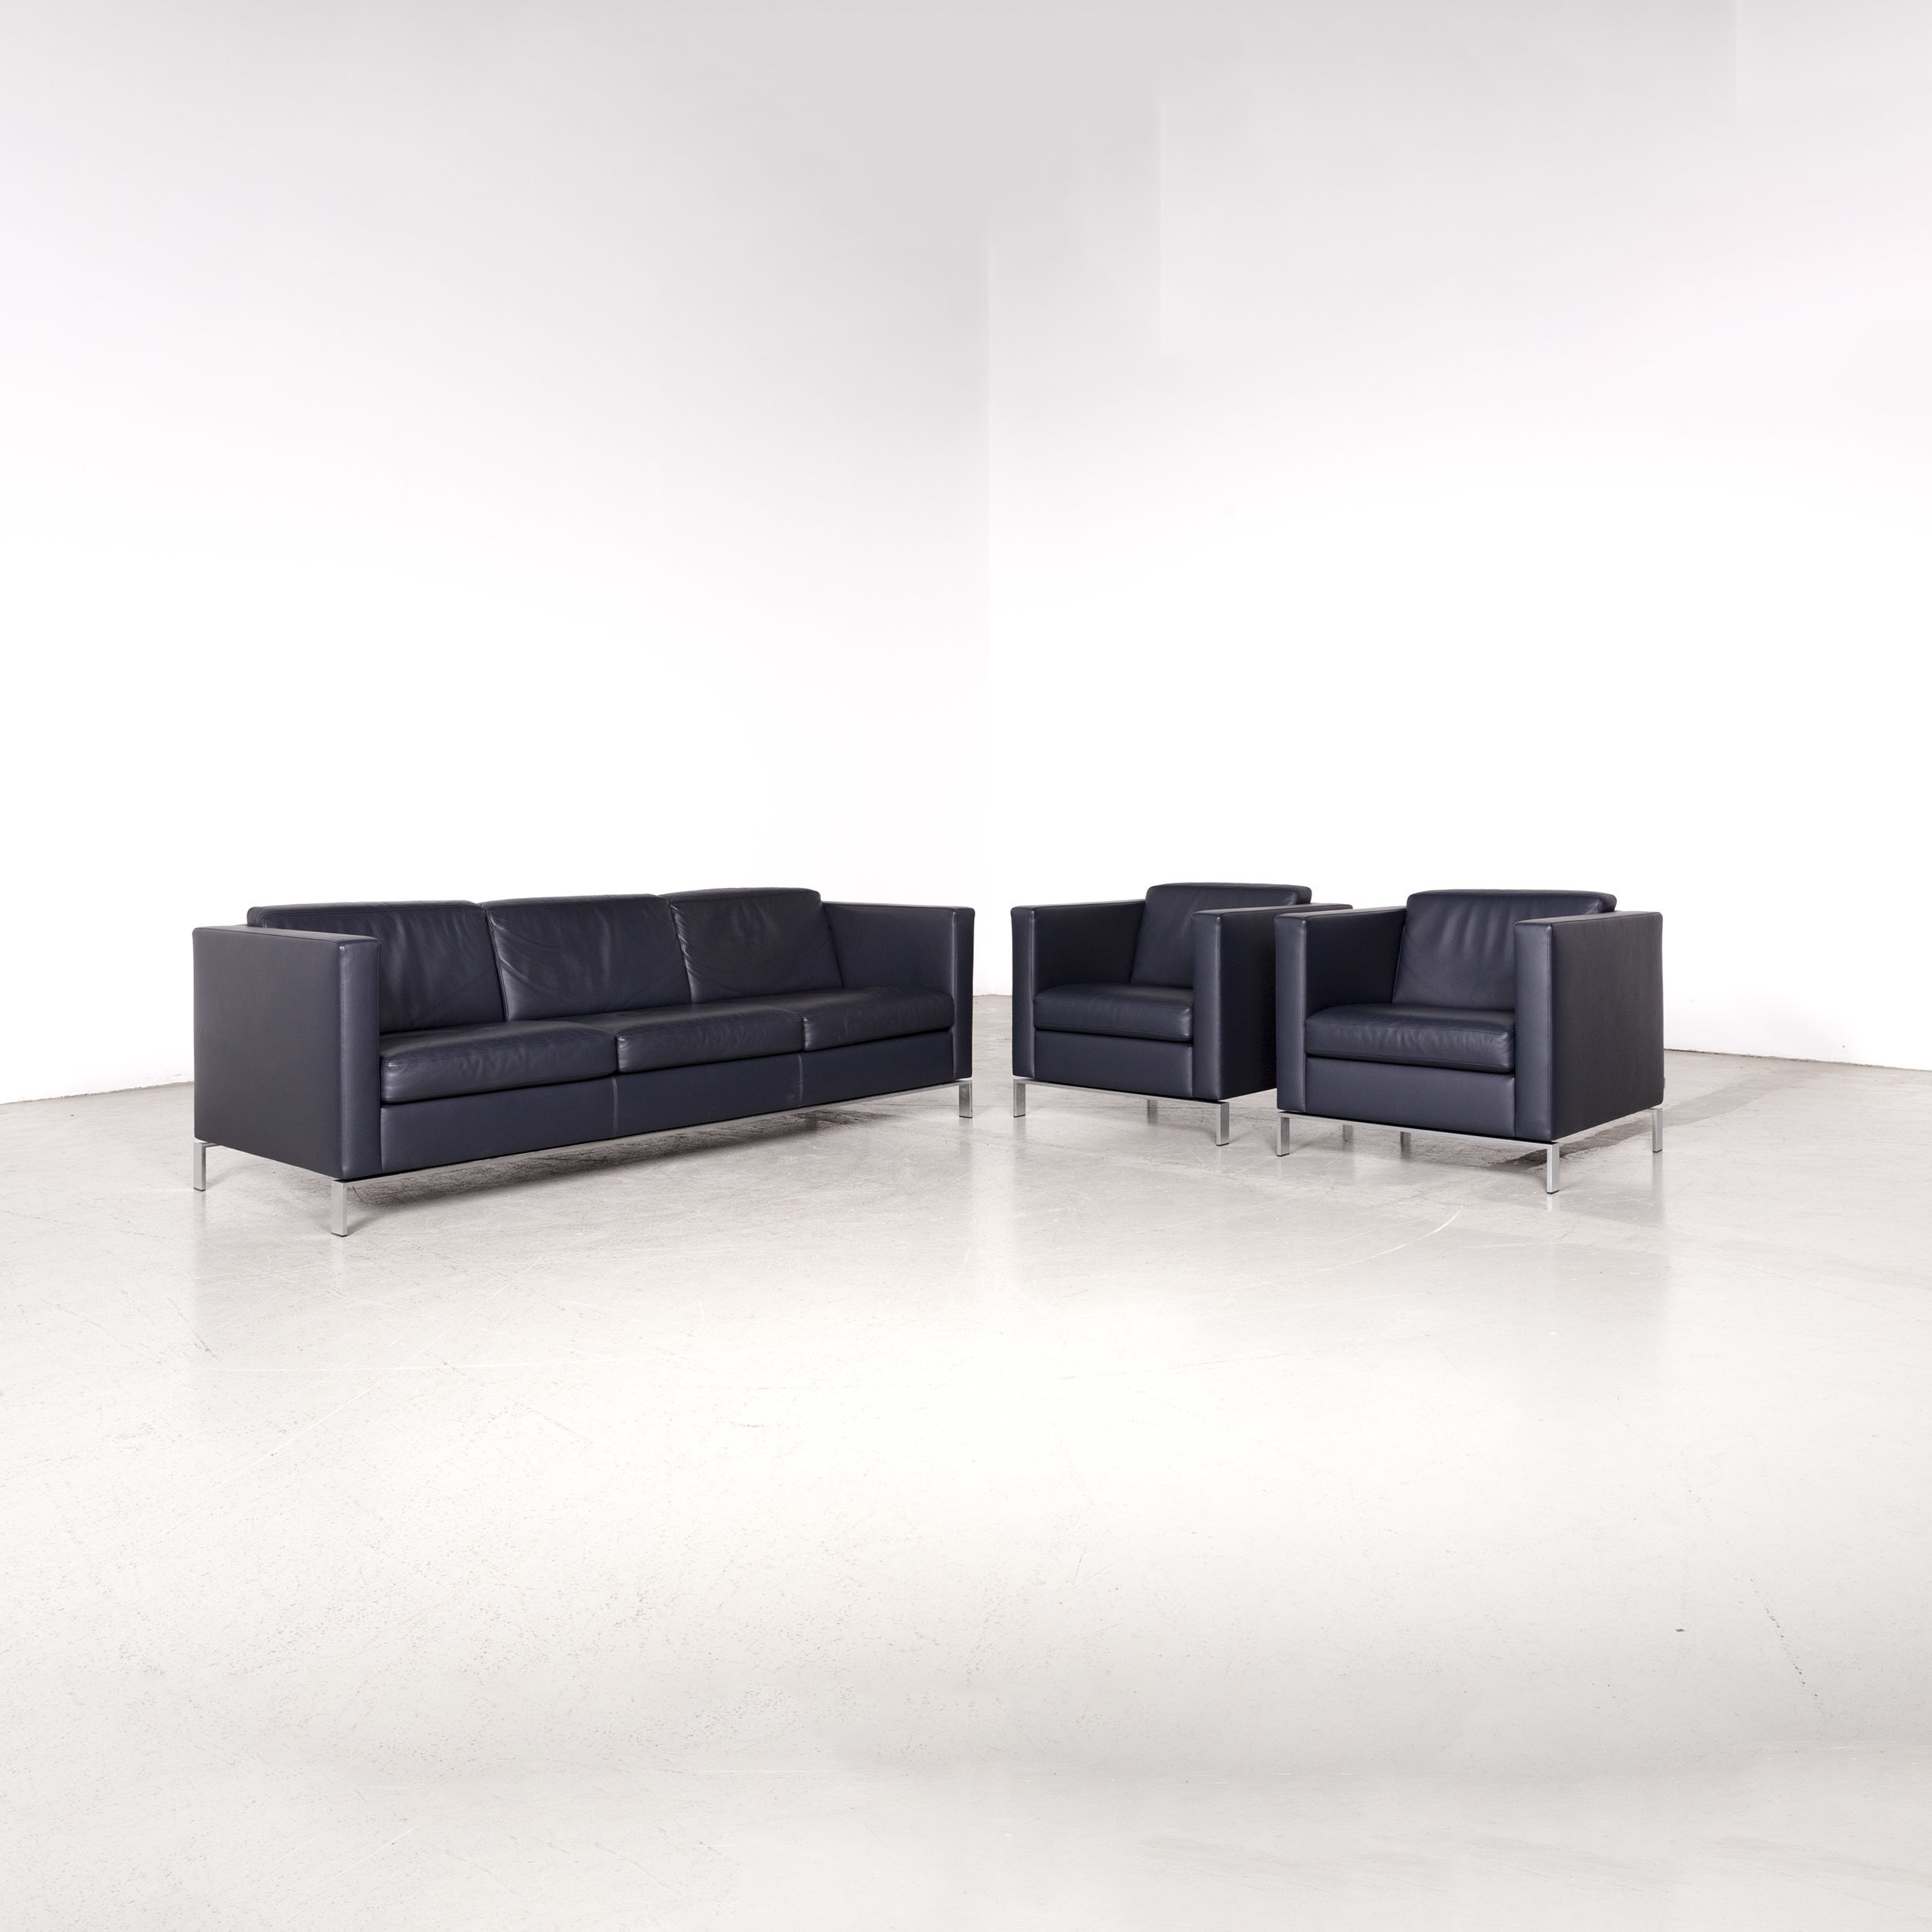 Fabulous Walter Knoll Foster Designer Leather Sofa Set Blue Three Seater Chair Genuine Leather Couch 8228 Bralicious Painted Fabric Chair Ideas Braliciousco